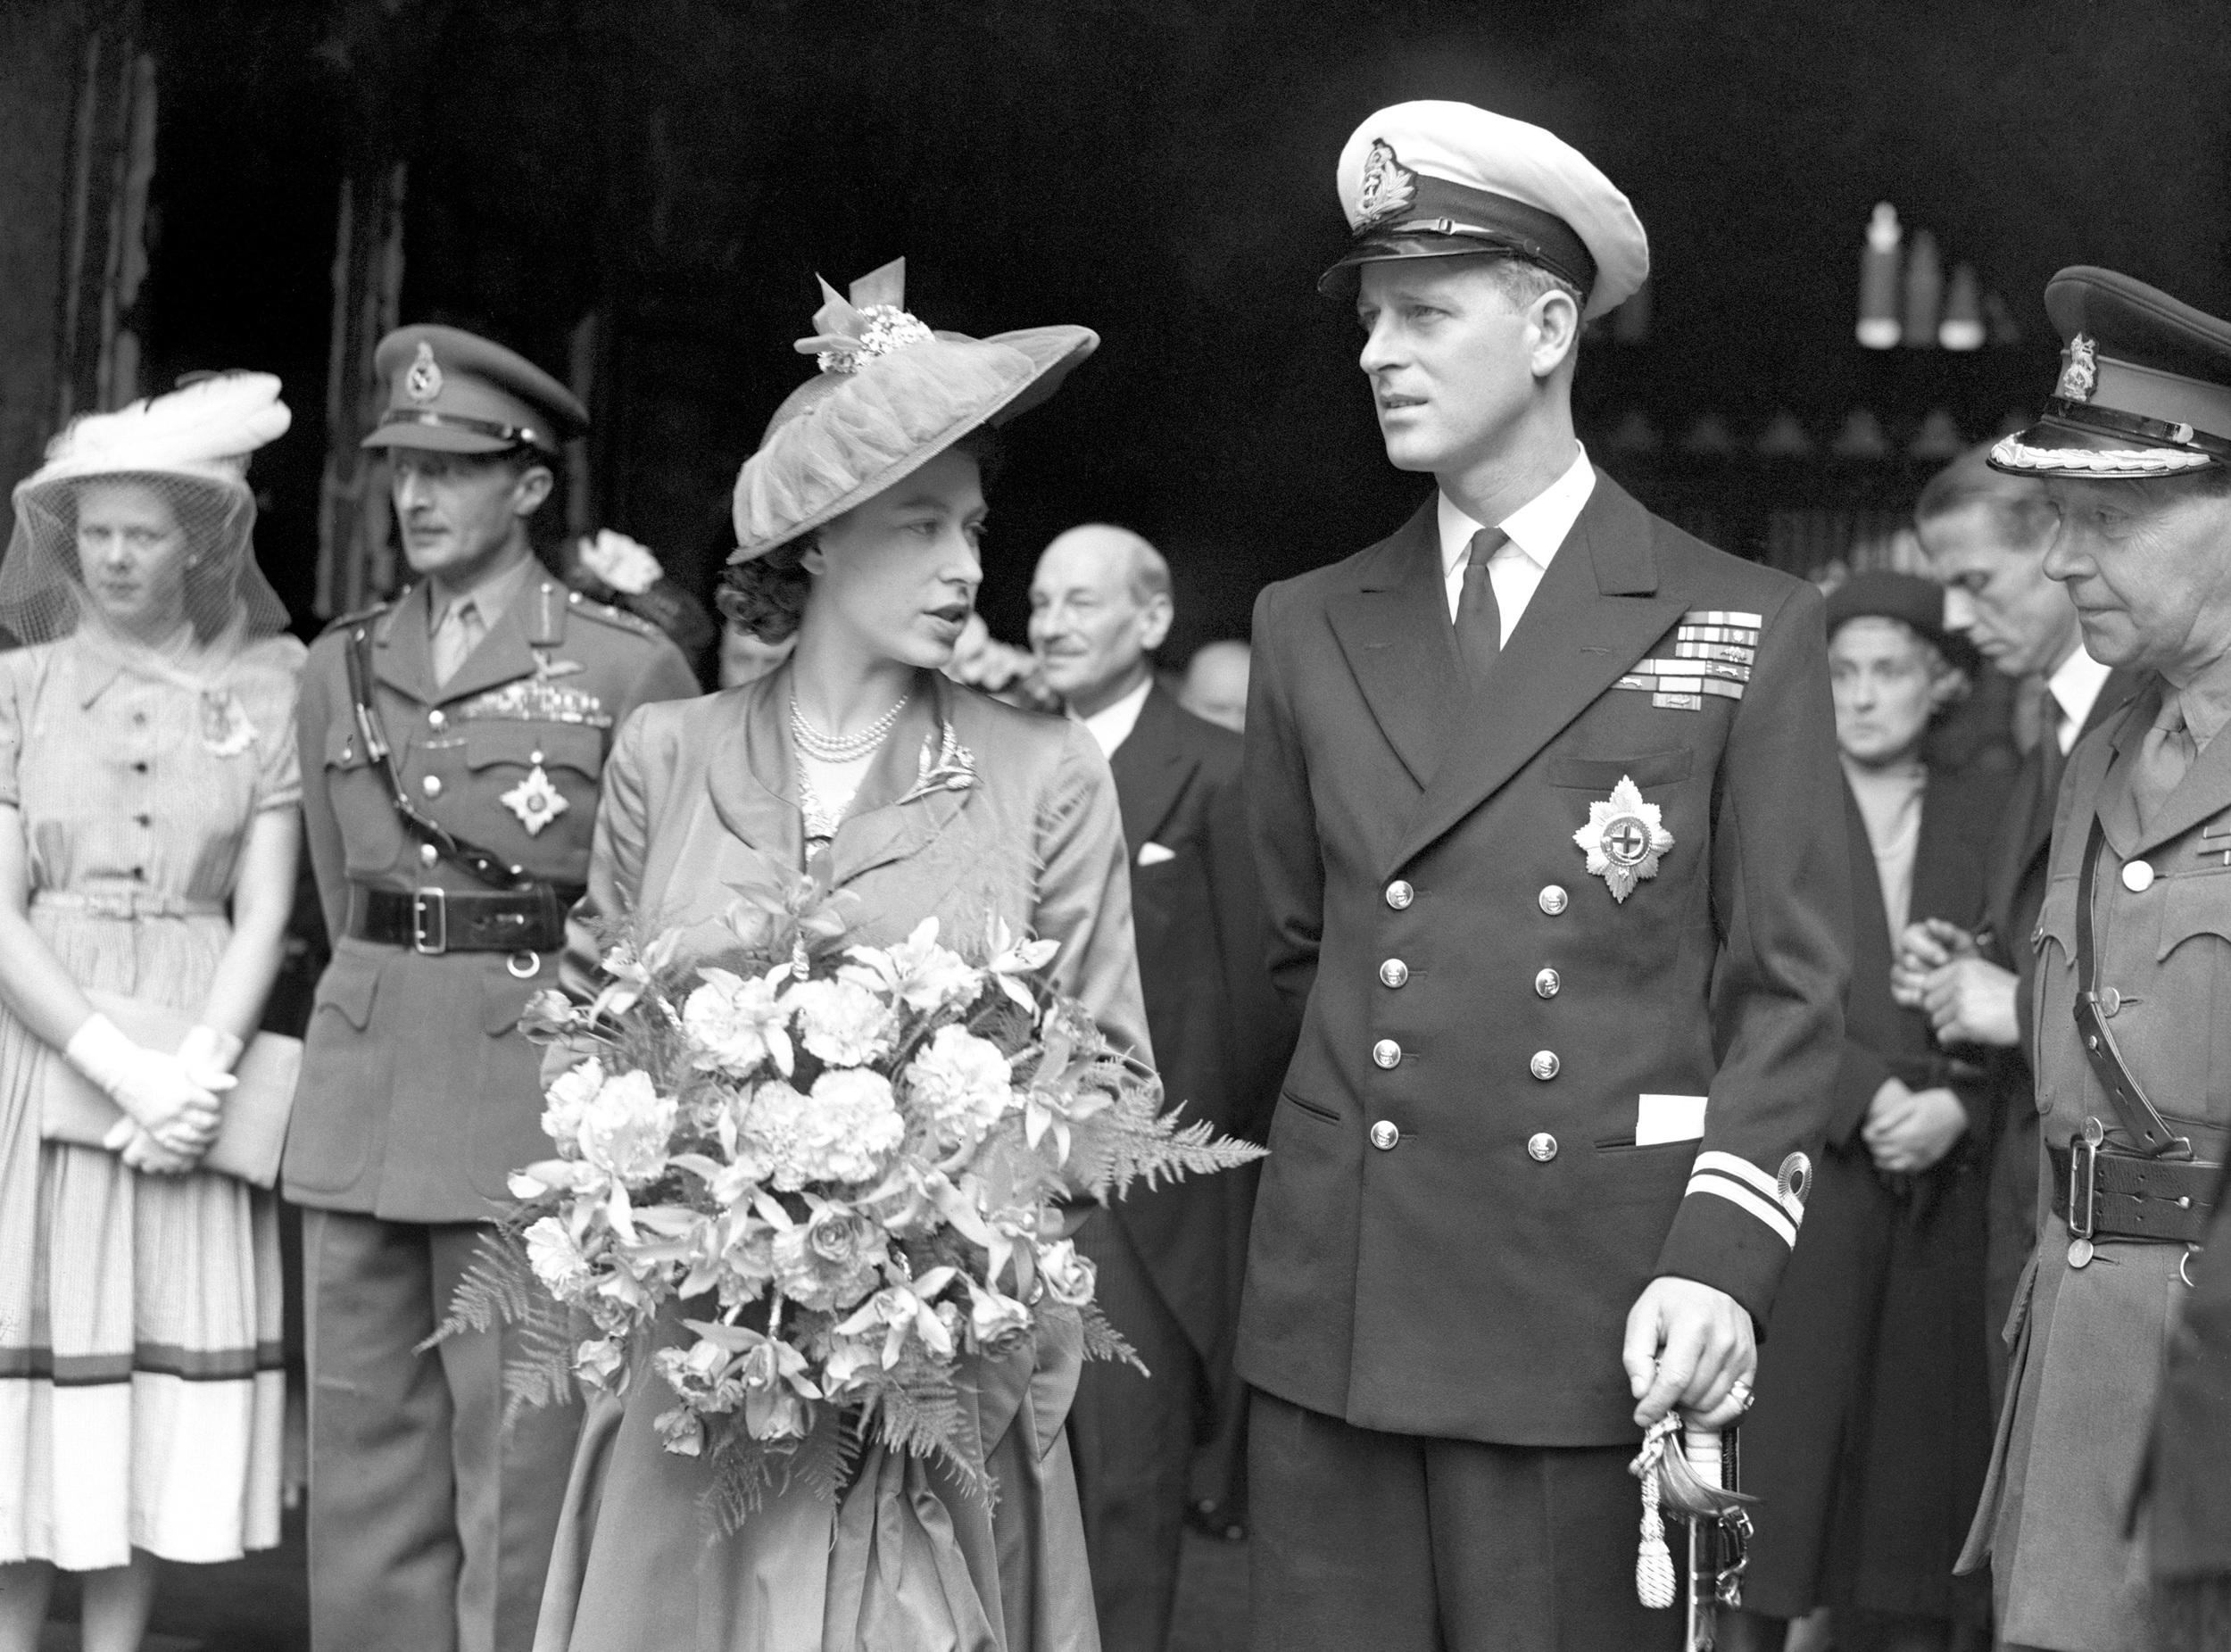 The Duke of Edinburgh and his wife Princess Elizabeth leave the Guildhall, where he received the Freedom of the City of London.